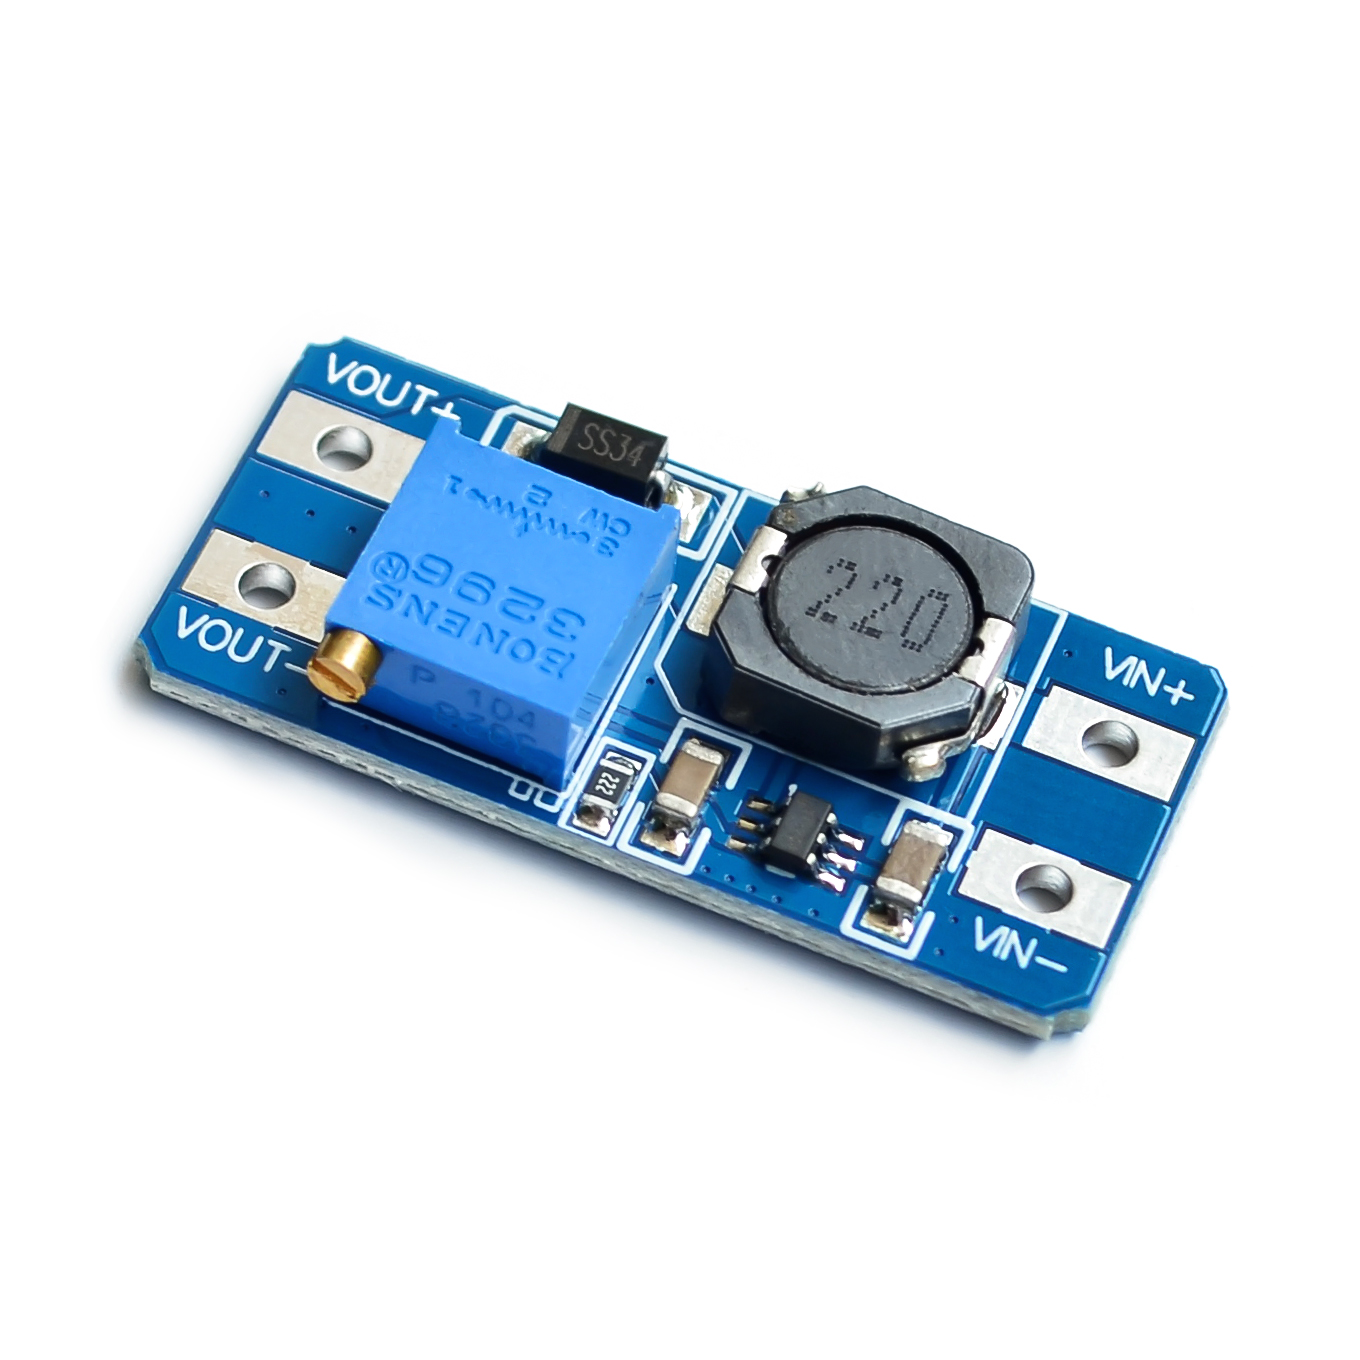 5pcs/lot MT3608 DC-DC Adjustable Boost Module 2A Boost Plate 2A Step Up Module With MICRO USB 2V - 24V To 5V 9V 12V 28V LM2577